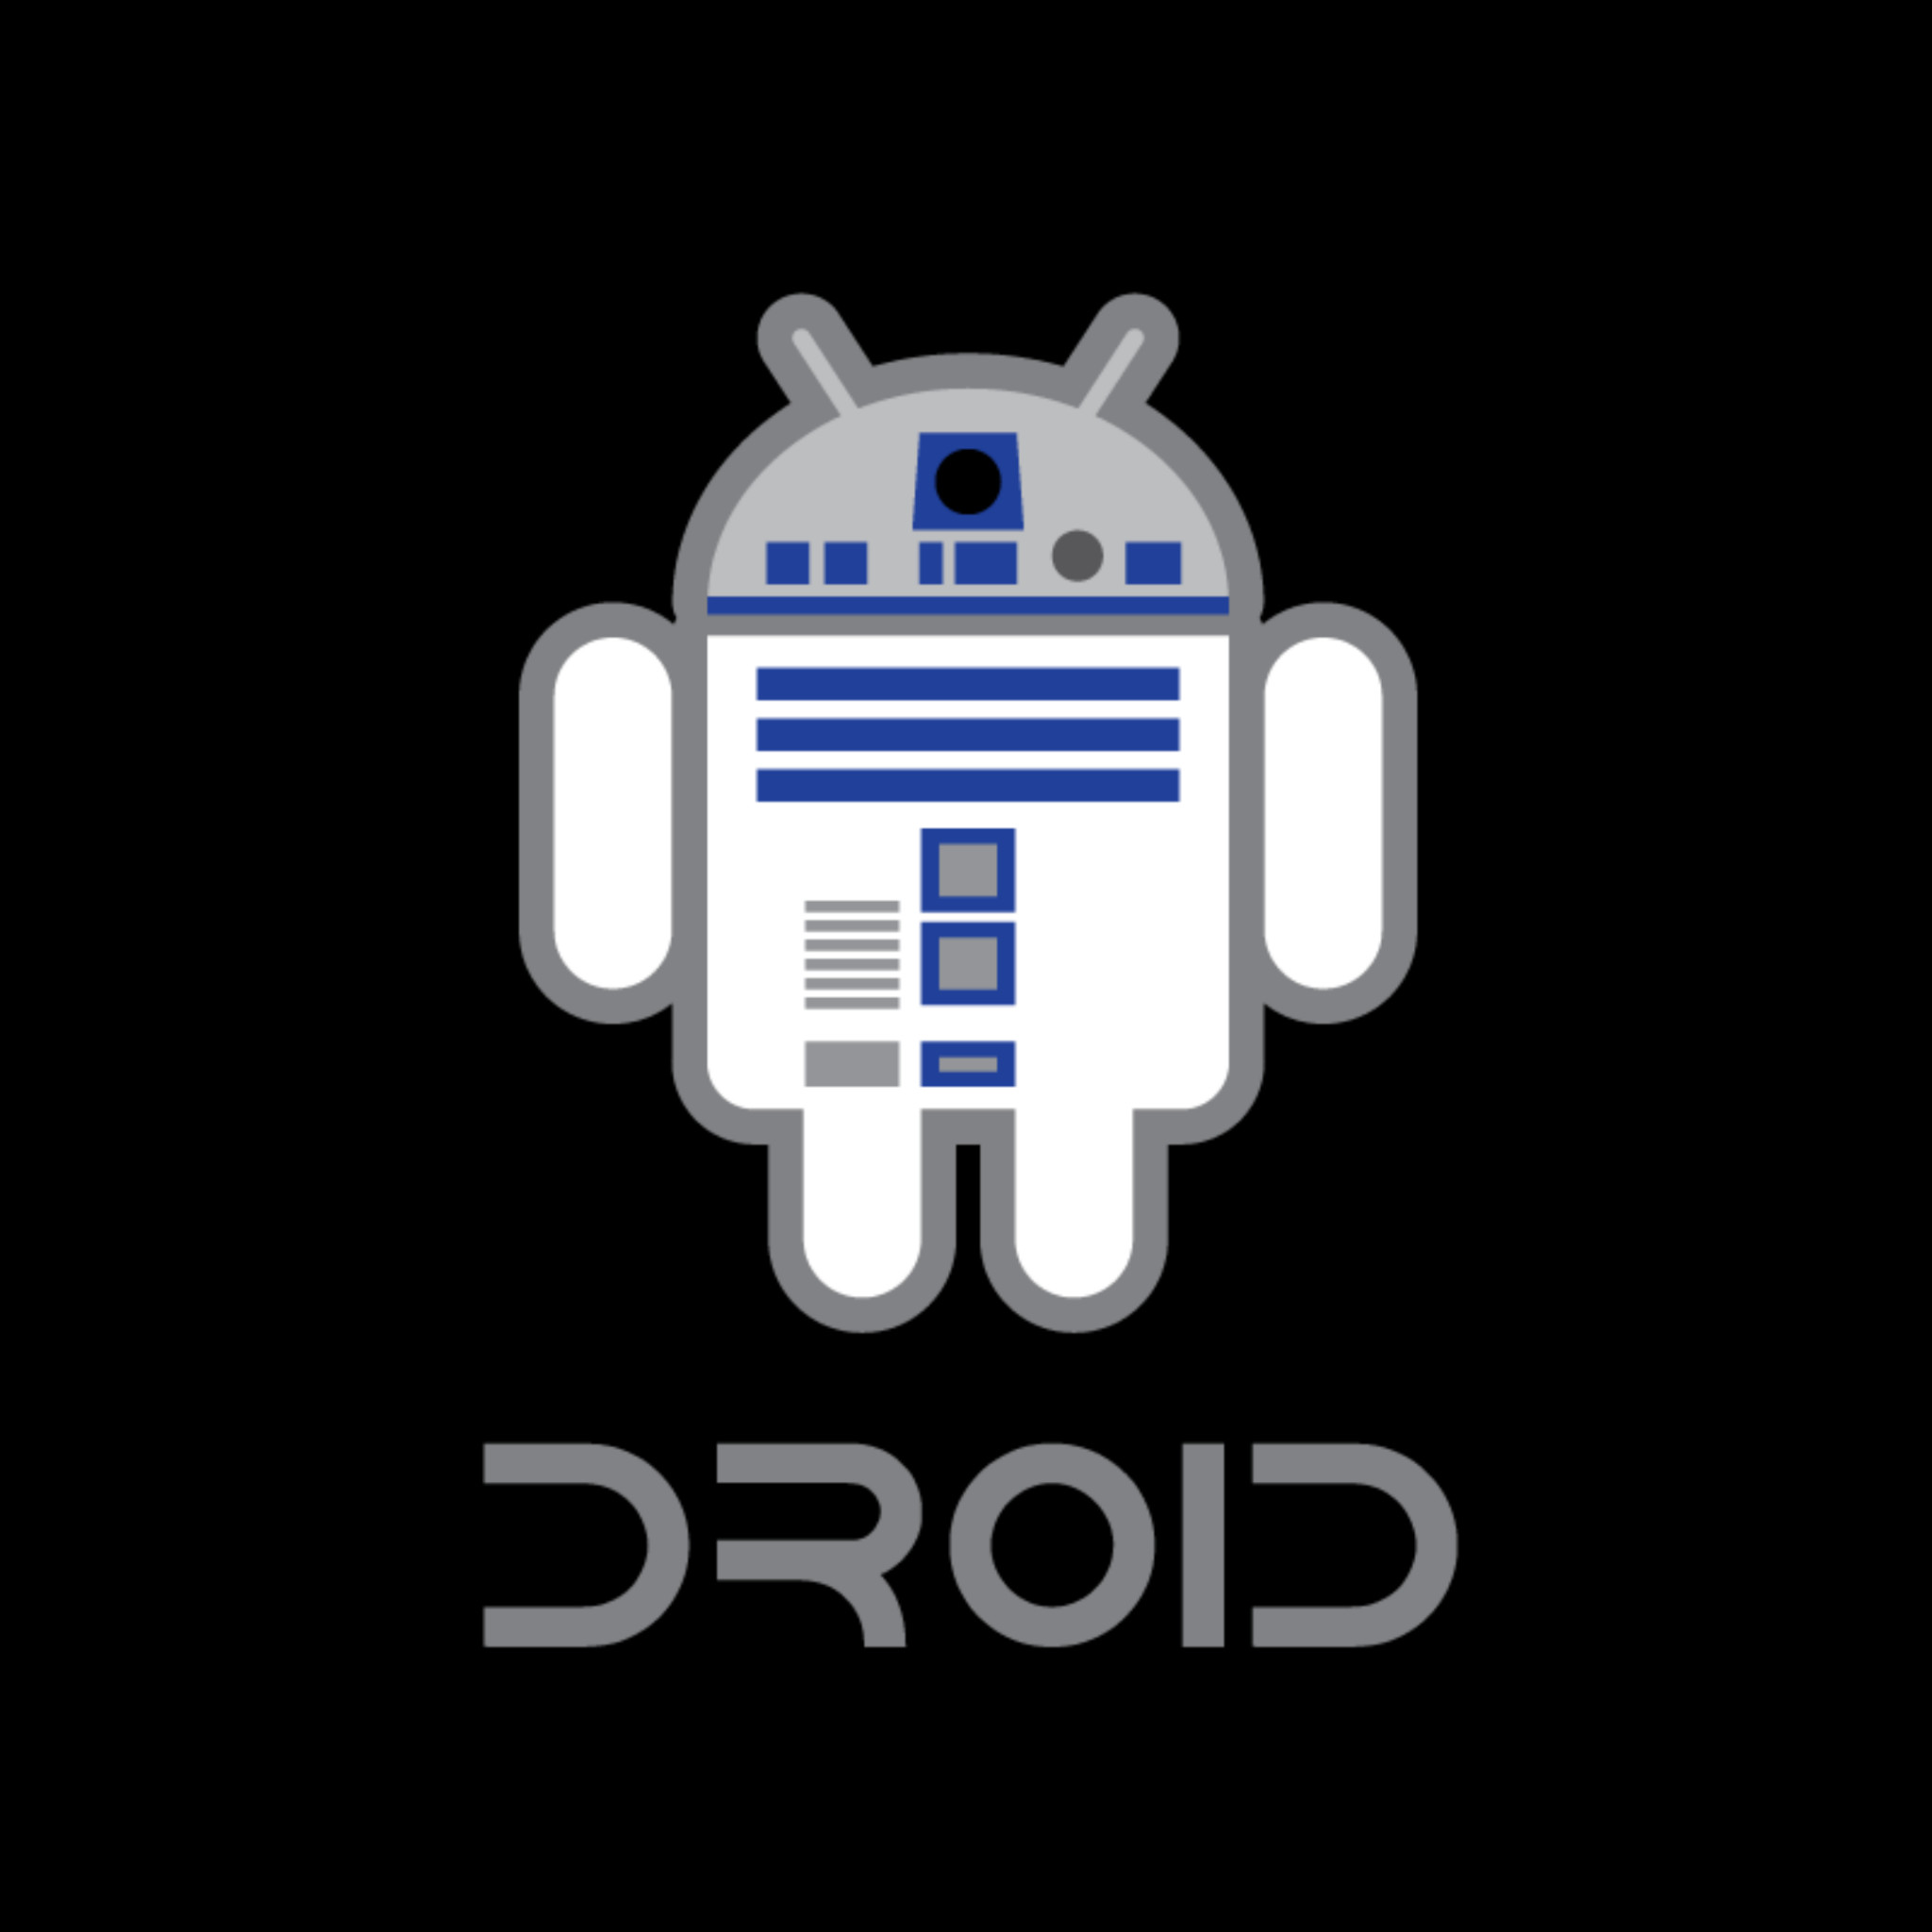 star wars wallpaper app for android ✓ hd wallpaper